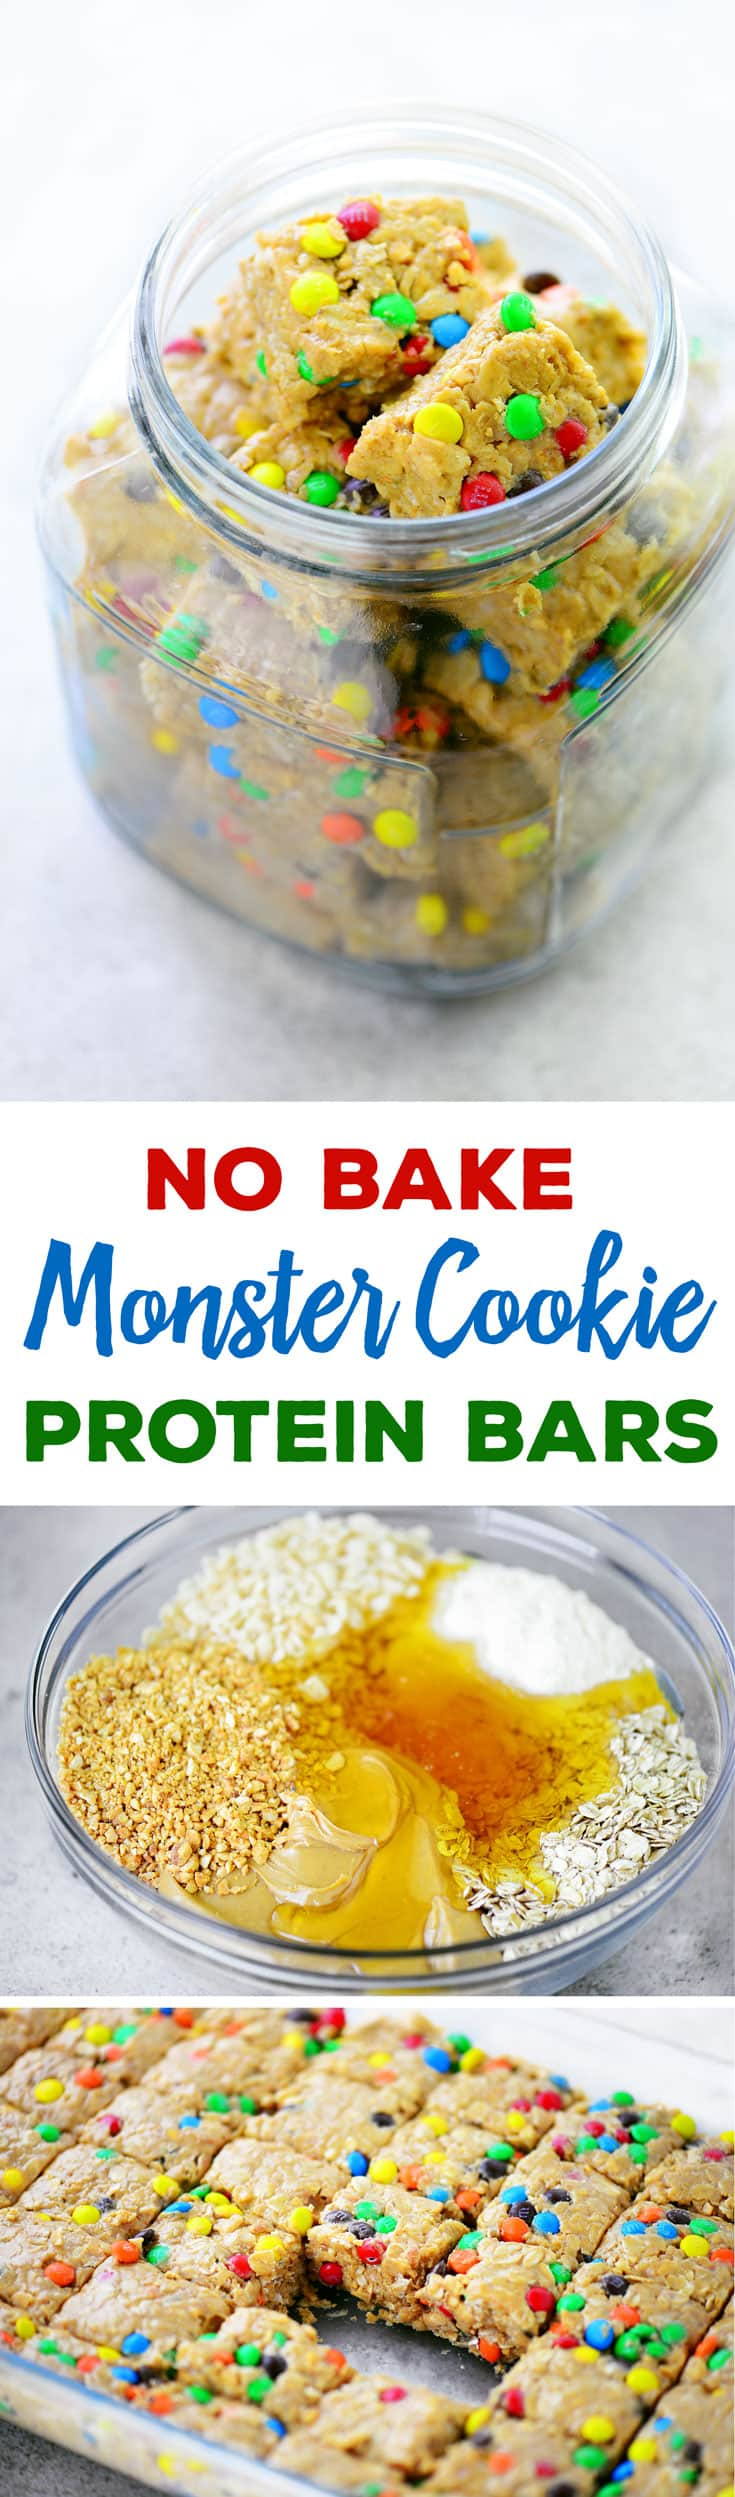 These No Bake Monster Cookie Protein Bars are a chewy, crunchy, delicious breakfast. These energy bites also are a great snack option! #breakfast #energybites